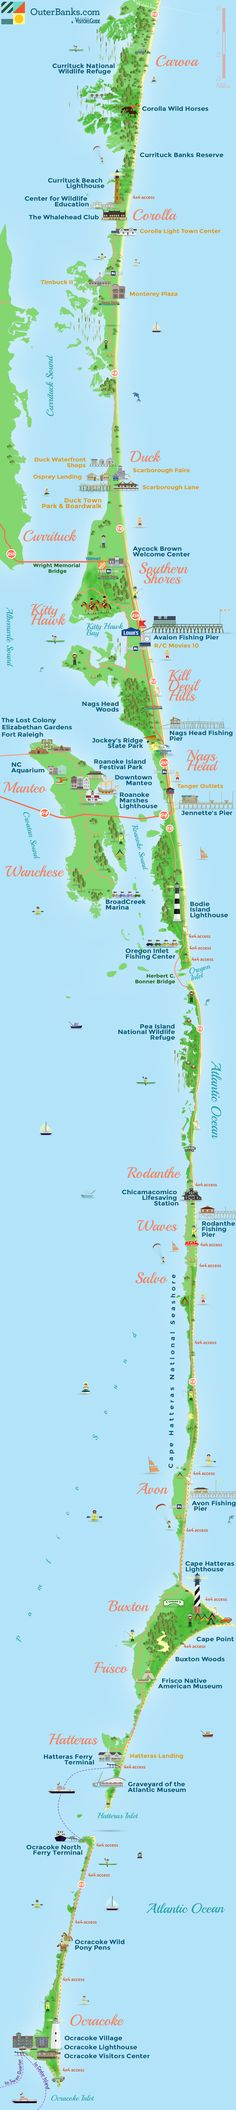 Outer Banks Map - a string of peninsulas and barrier islands separating the Atlantic Ocean from mainland North Carolina Outer Banks North Carolina, Outer Banks Nc, Outer Banks Vacation, North Carolina Homes, South Carolina, North Carolina Beaches, Kitty Hawk North Carolina, Nags Head North Carolina, Corolla North Carolina